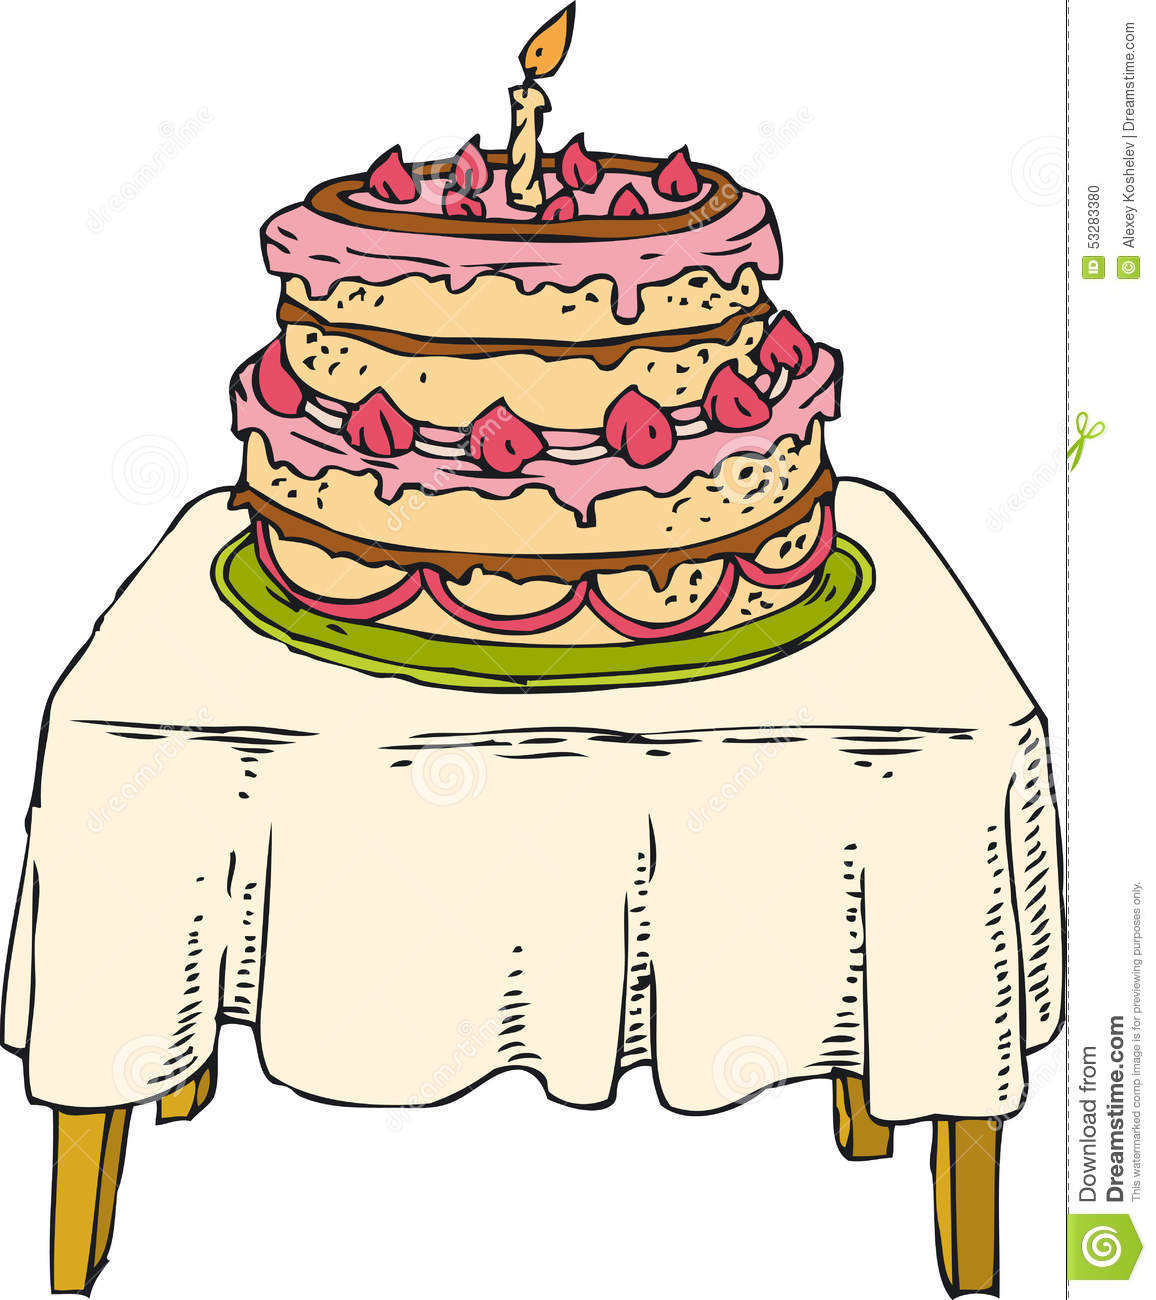 Cake on the table stock vector. Illustration of fire.